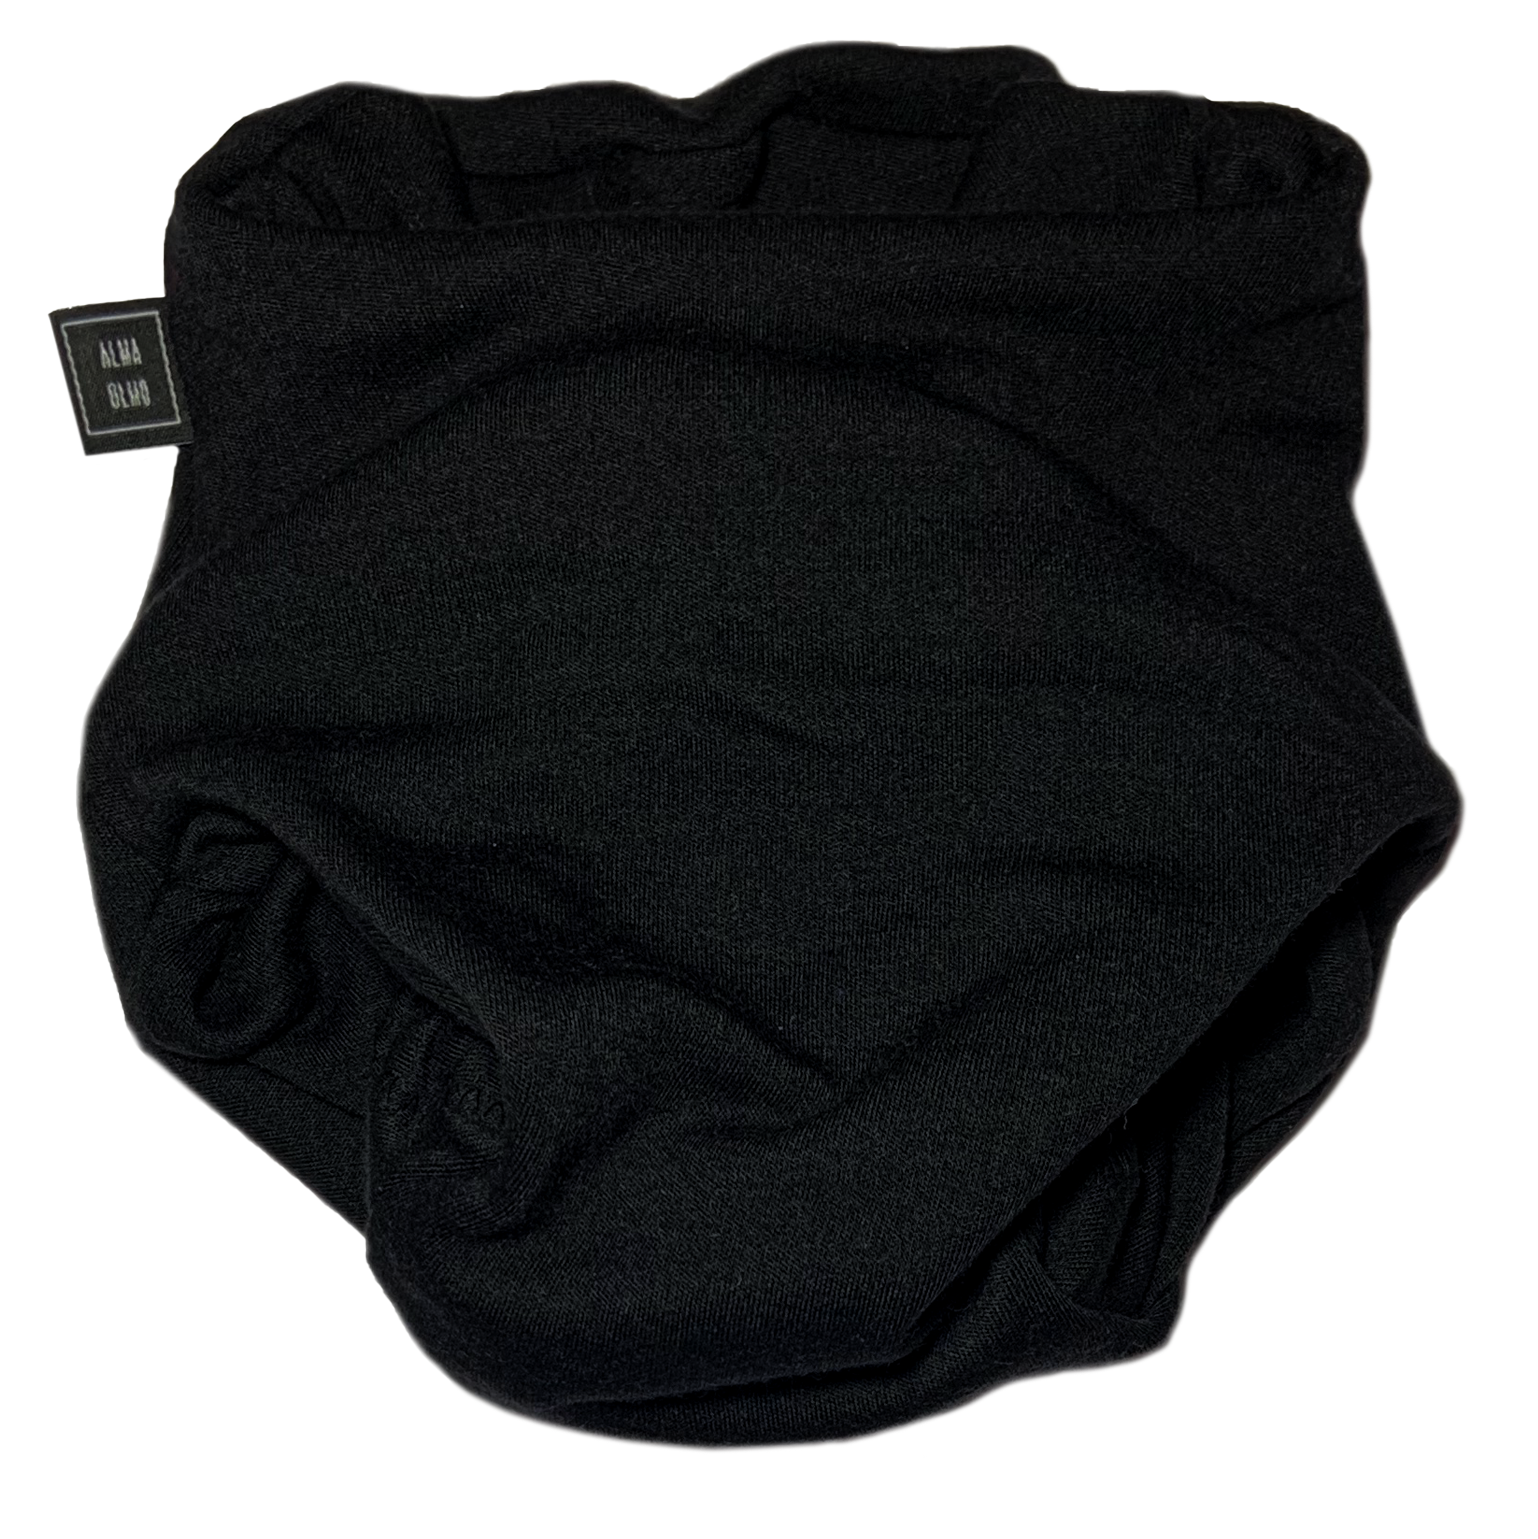 black pull up nappy picture taken from the front